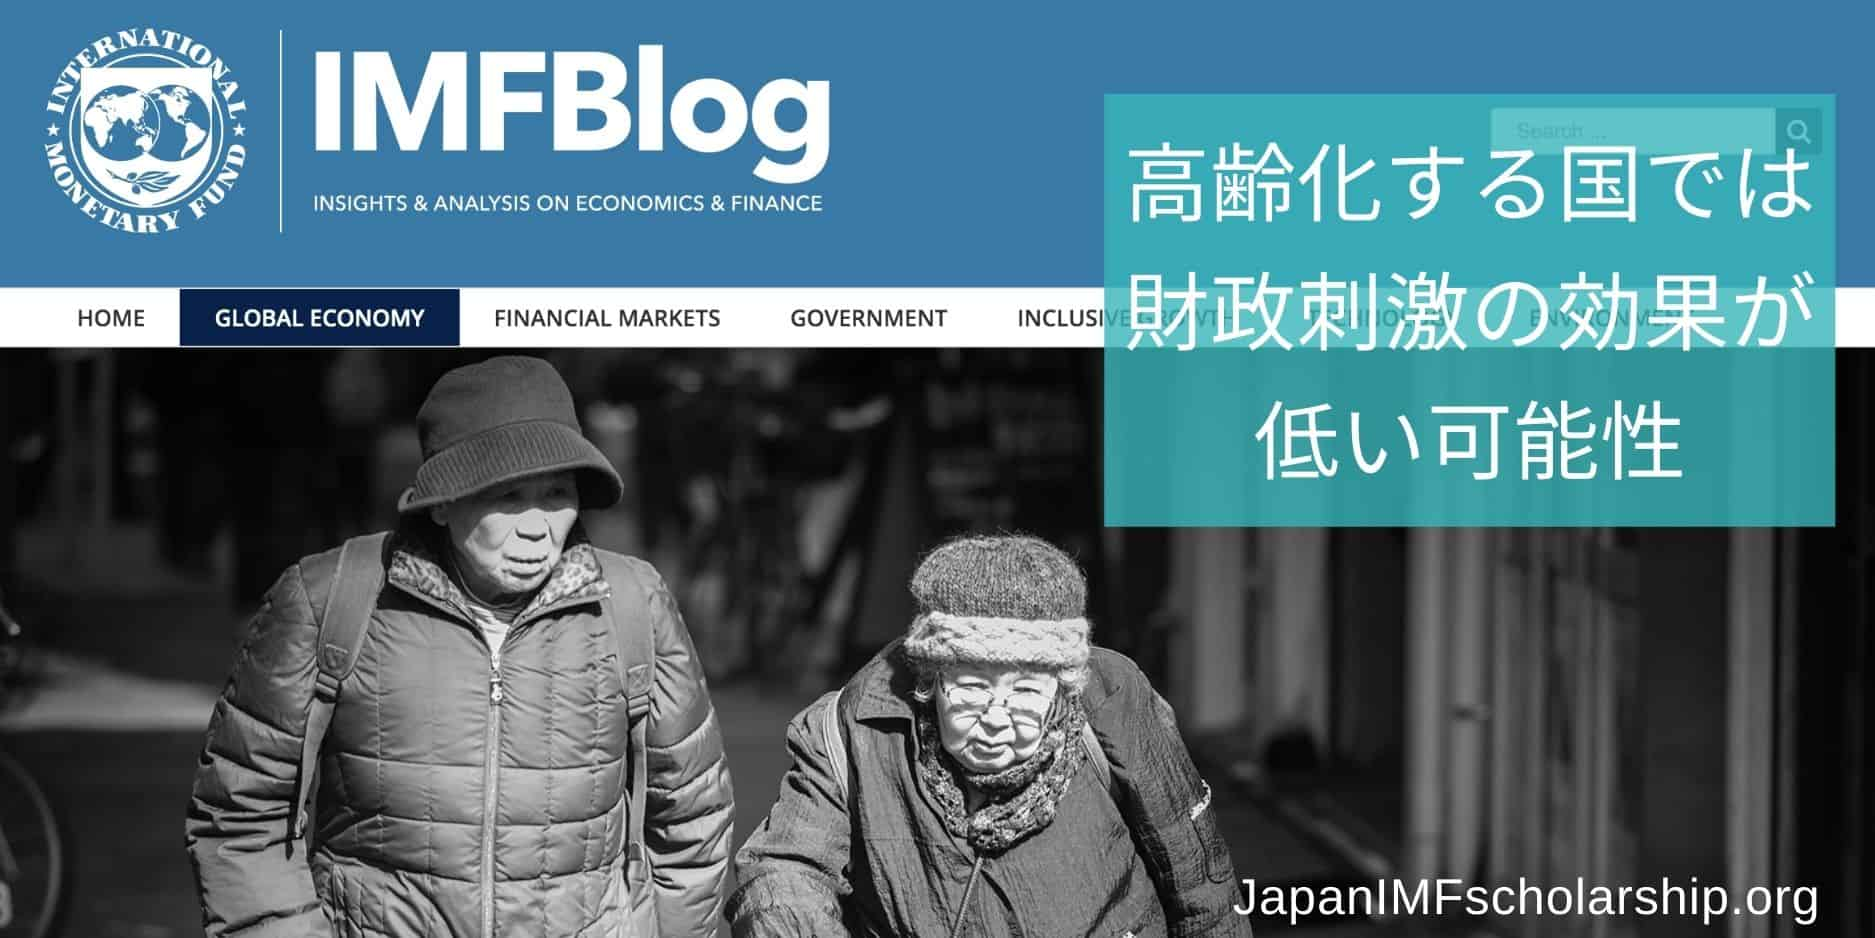 jisp web-fb imf blog aging economies may benefit less from fiscal stimulus